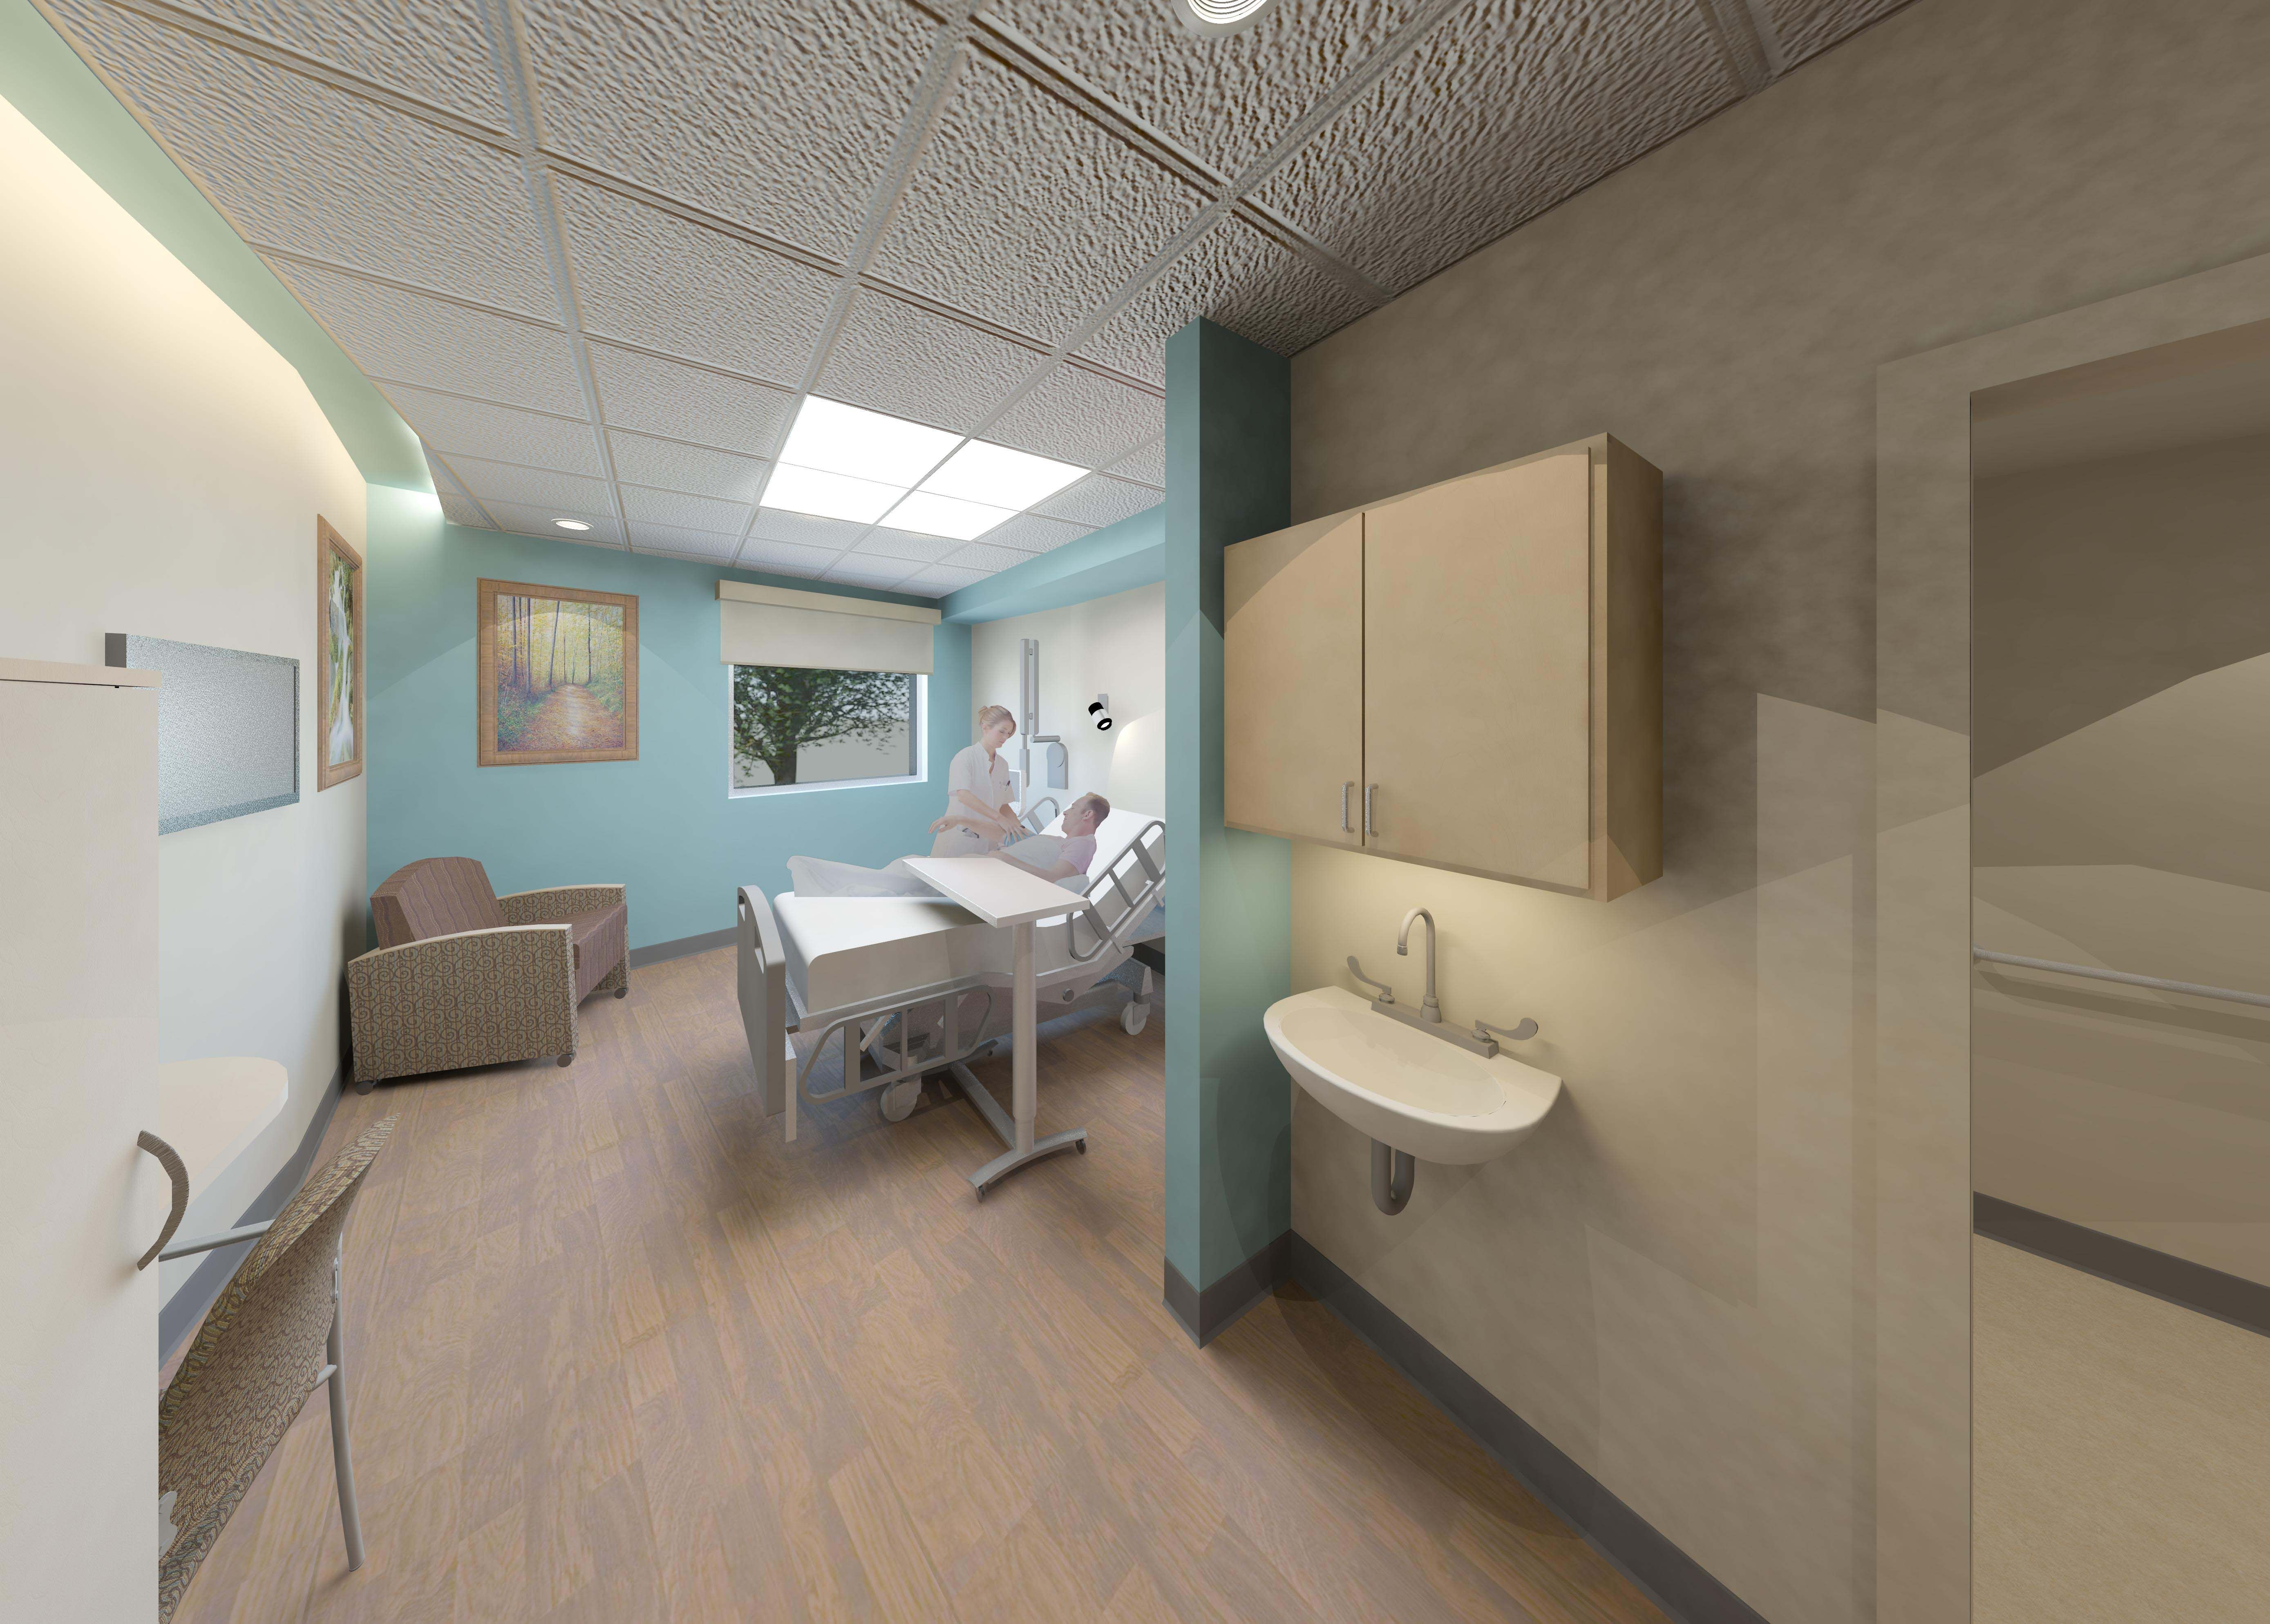 Attractive-Hospital-Interior-Design-for-Waiting-Room | Hospitals ...